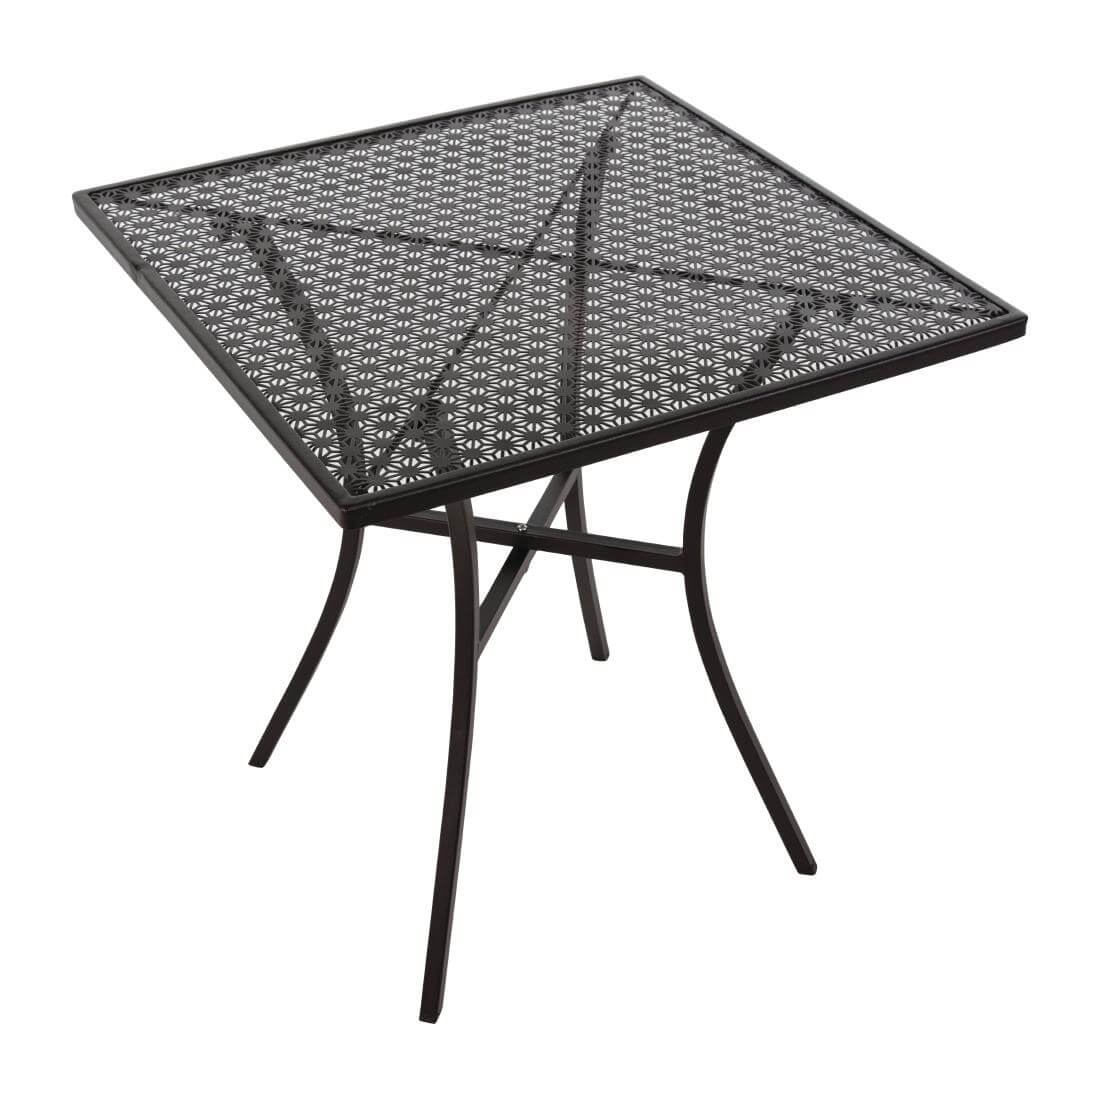 Steel Patterned Square Table - Black